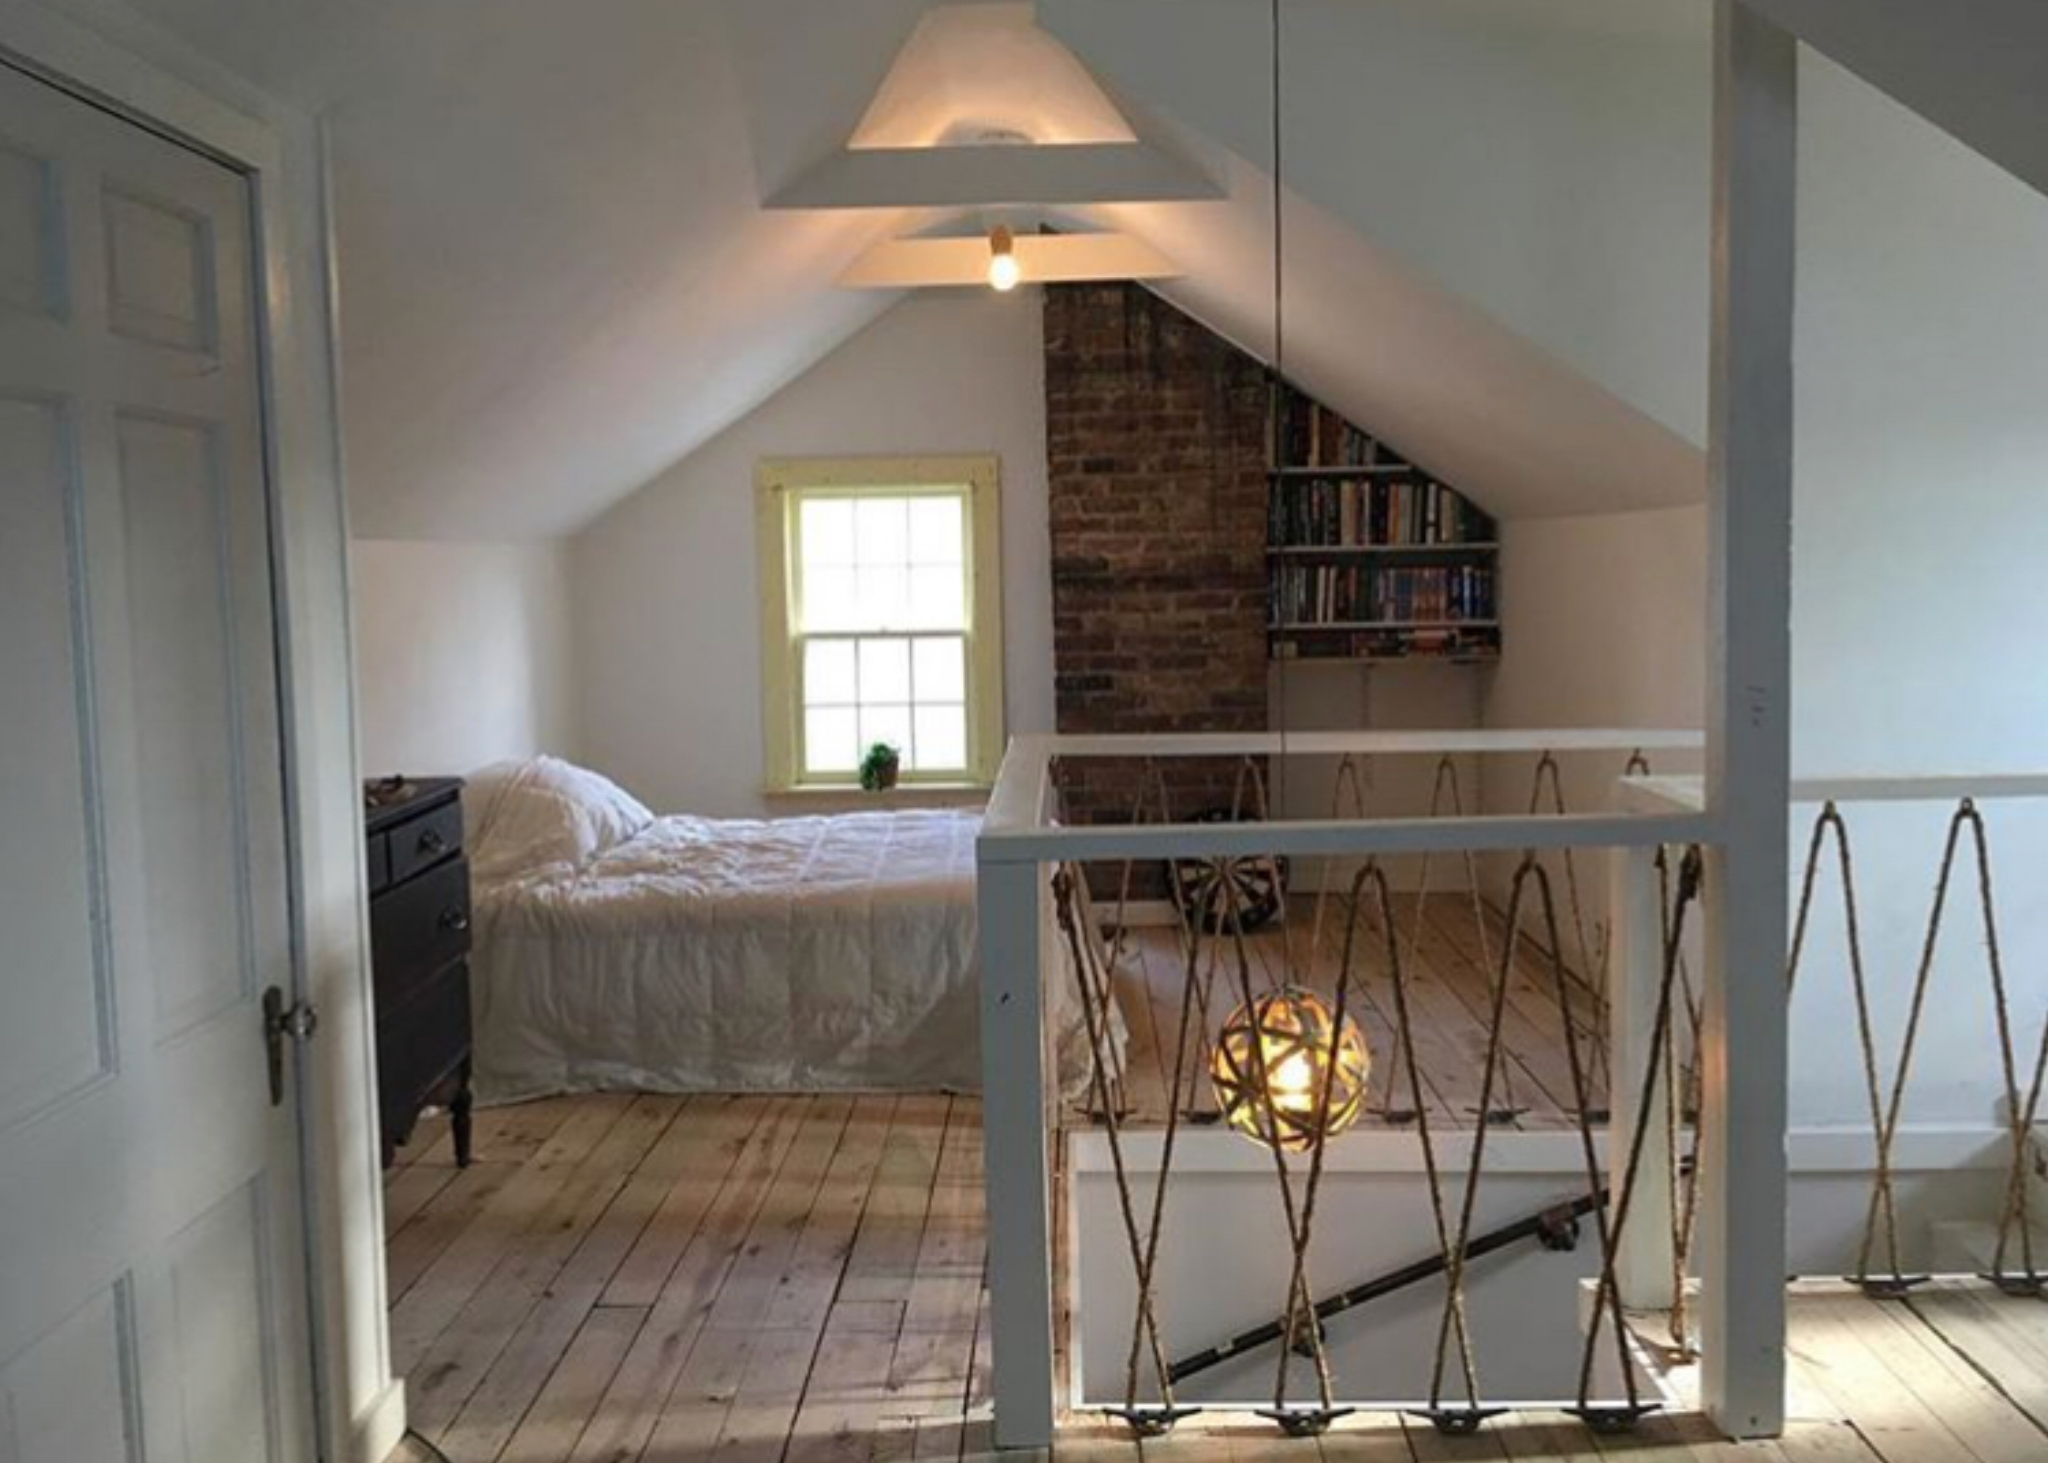 This renovation turned three rundown, second-floor rooms into an open-air boy's room. The job included tearing down walls, adding new vents and insulation, installing new dry wall, removing layers of flooring, refurbishing the subfloor, and designing a new stairwell and lighting scheme